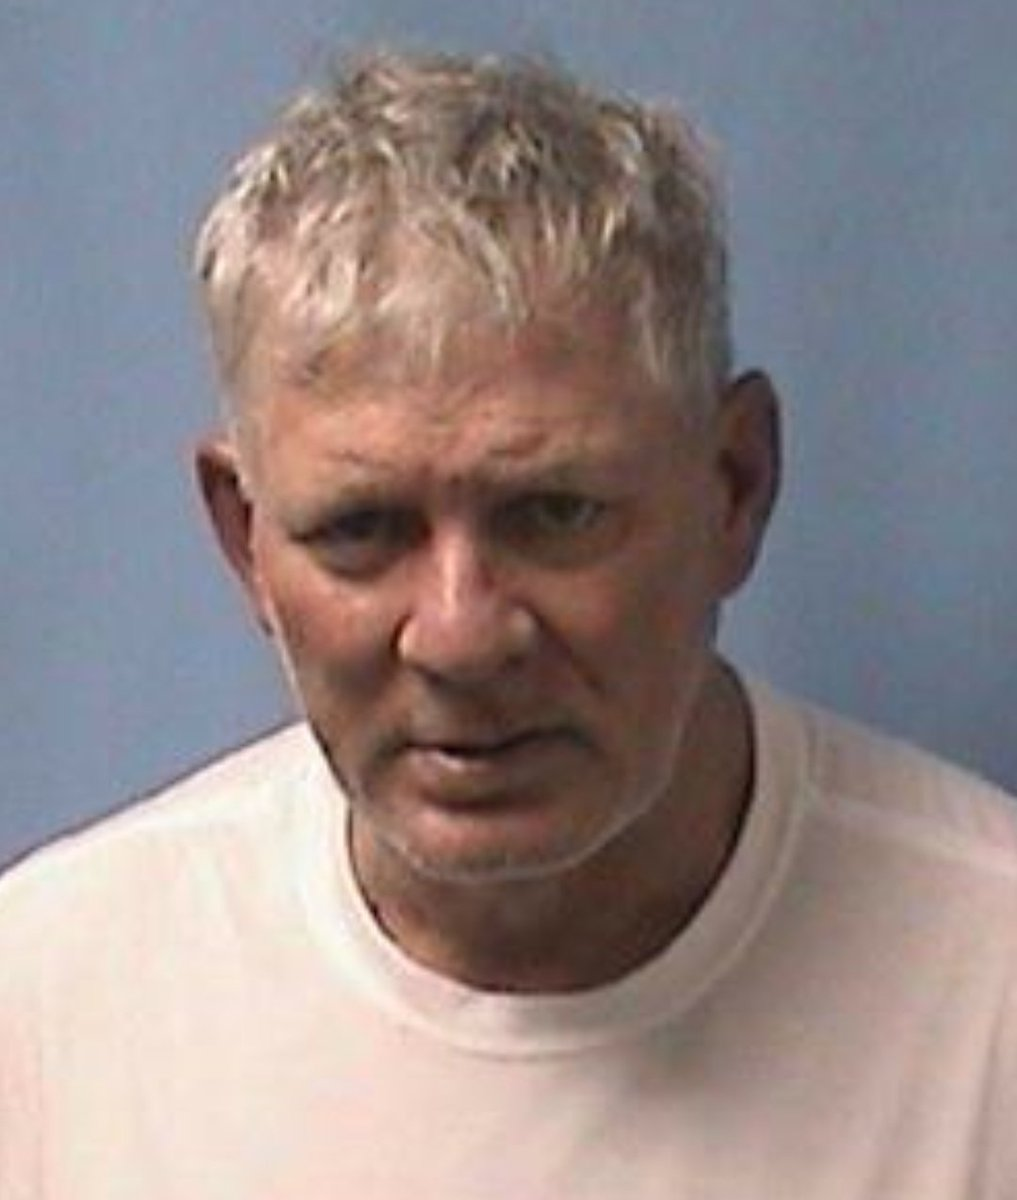 Lenny Dykstra accused of putting gun to Uber driver's head https://t.co/V3dgiY9S6B